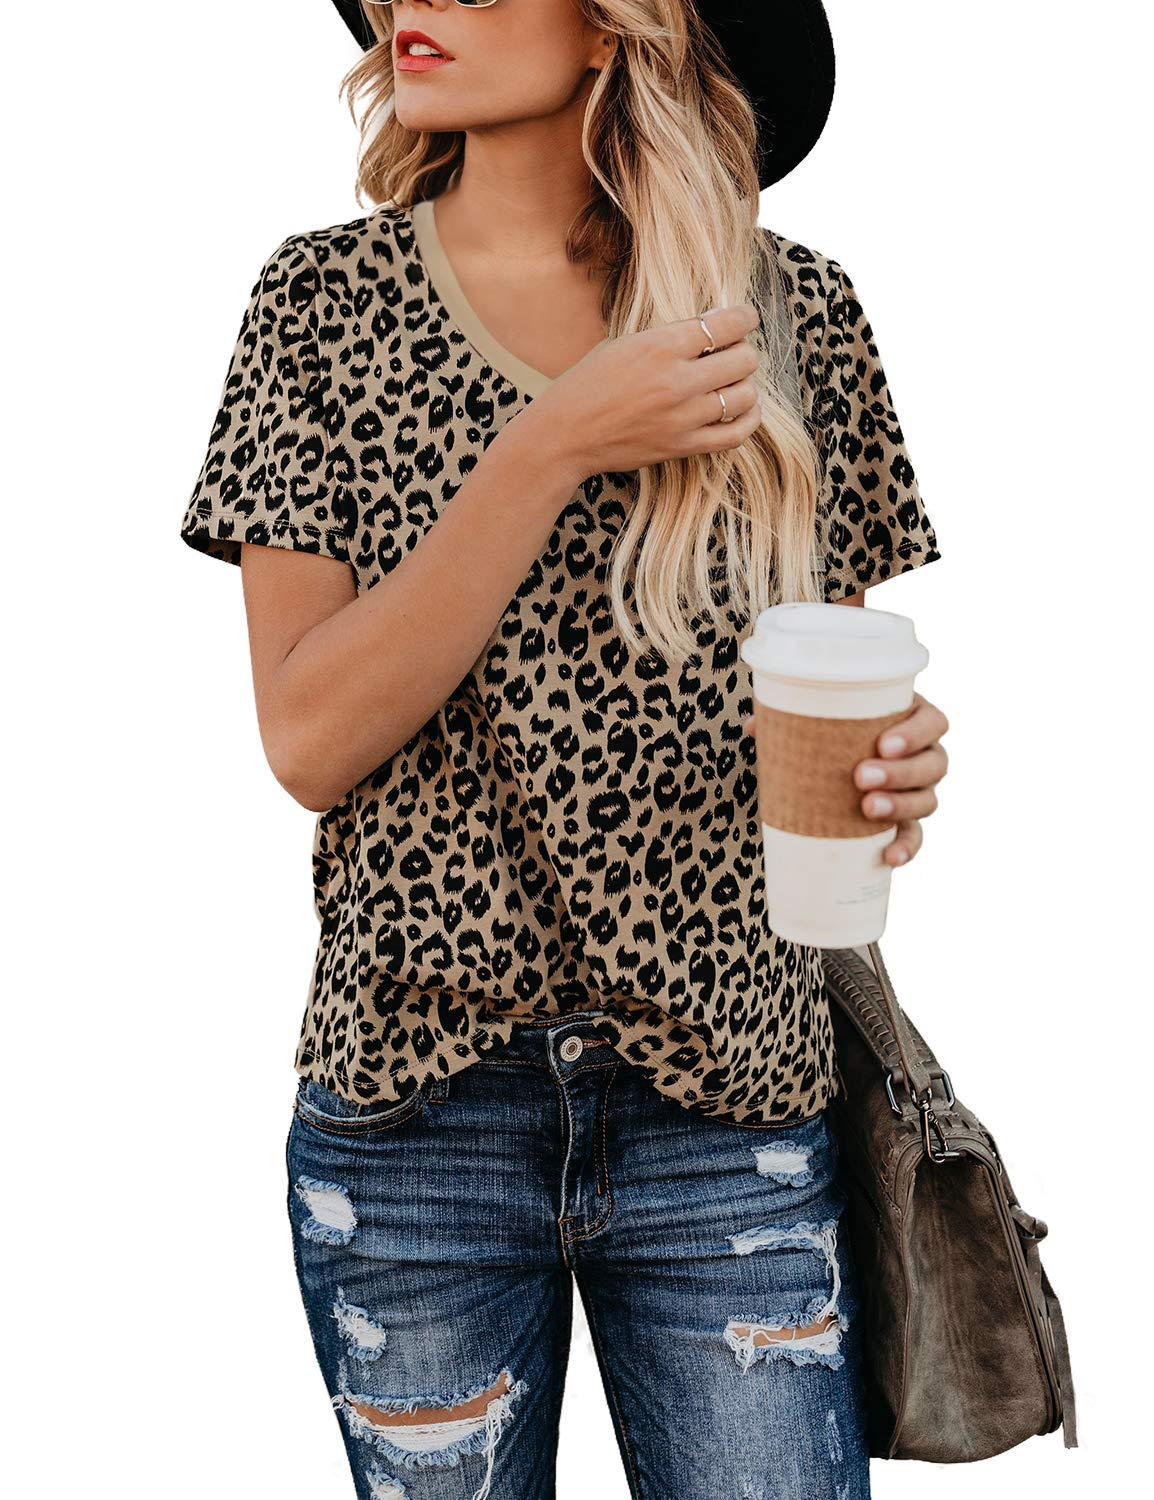 Youdiao Women's Casual V Neck Leopard Print Tops Summer Cute Shirts Basic Short Sleeve Tees Blouse Coffee M by Youdiao